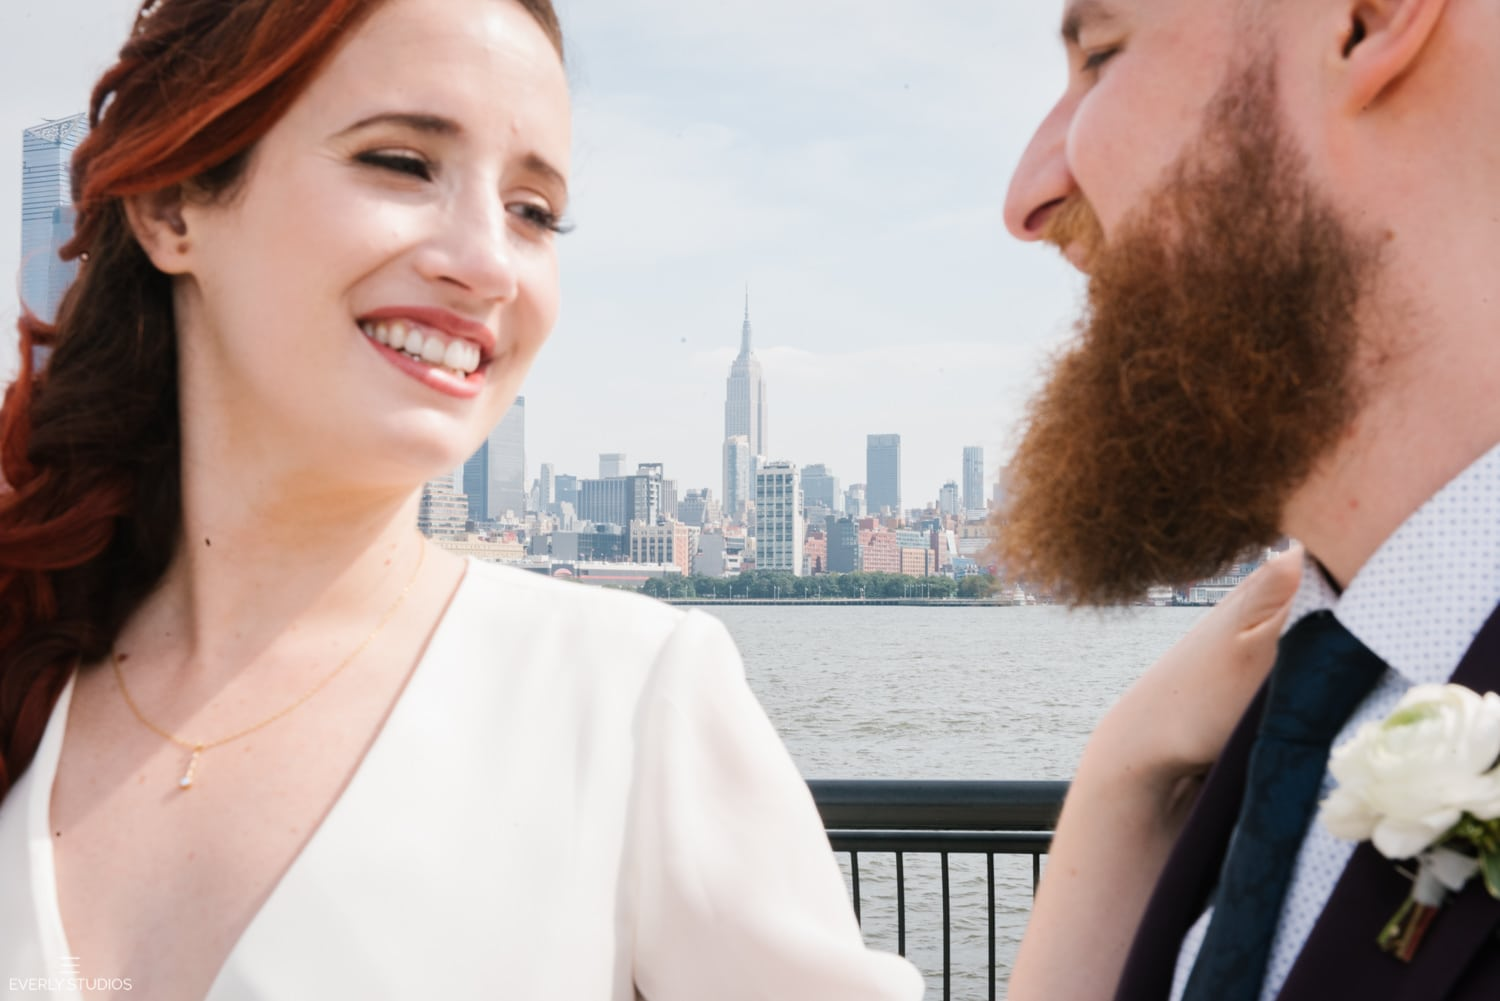 First look at Pier 13 Hoboken wedding. Photos by NYC elopement photographer Everly Studios, www.everlystudios.com